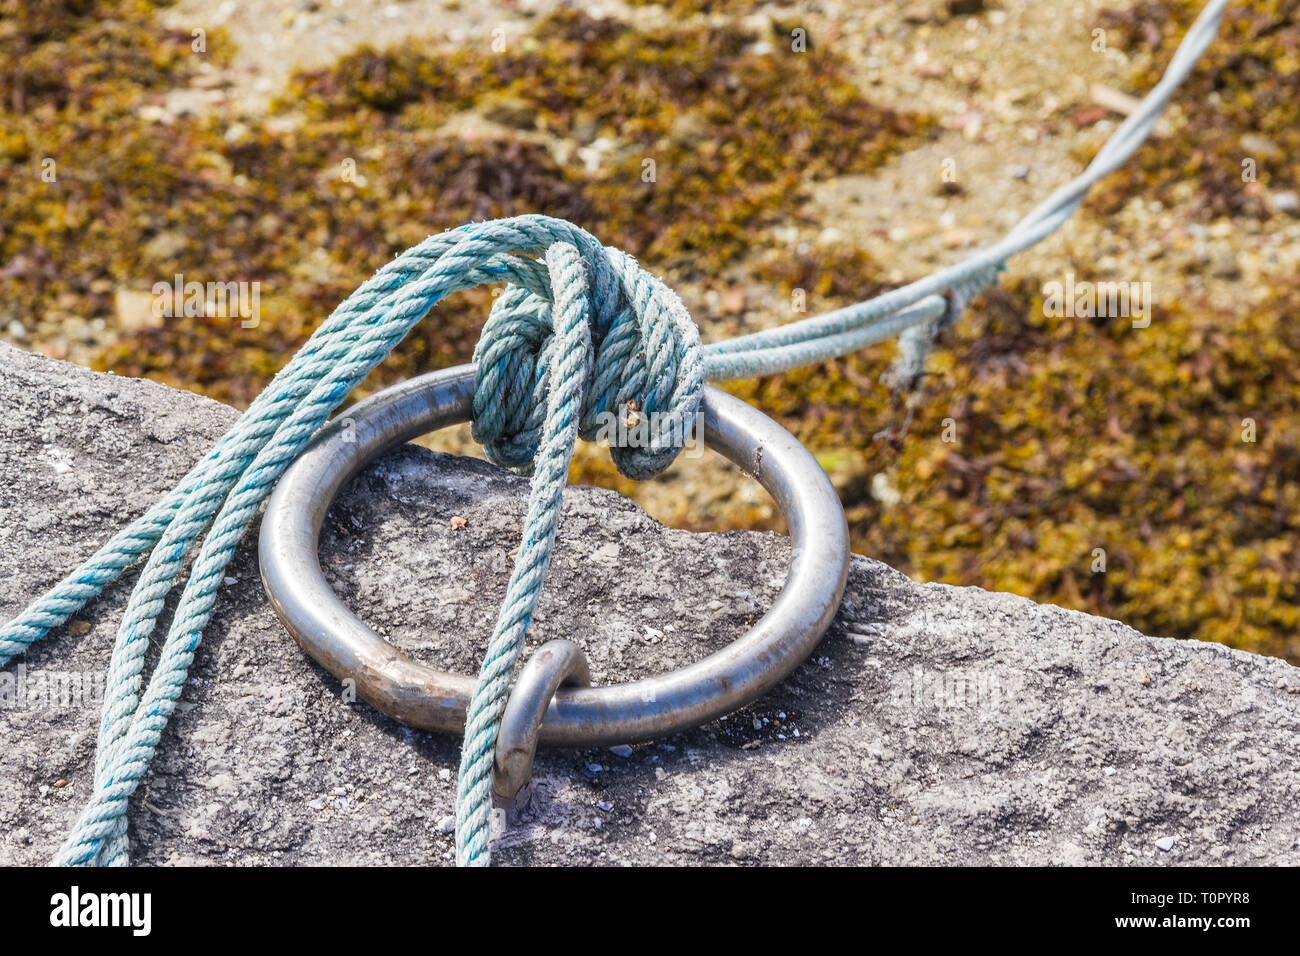 Sailor Knot On Stainless Steel Ring In The Fishing Harbor Stock Photo Alamy